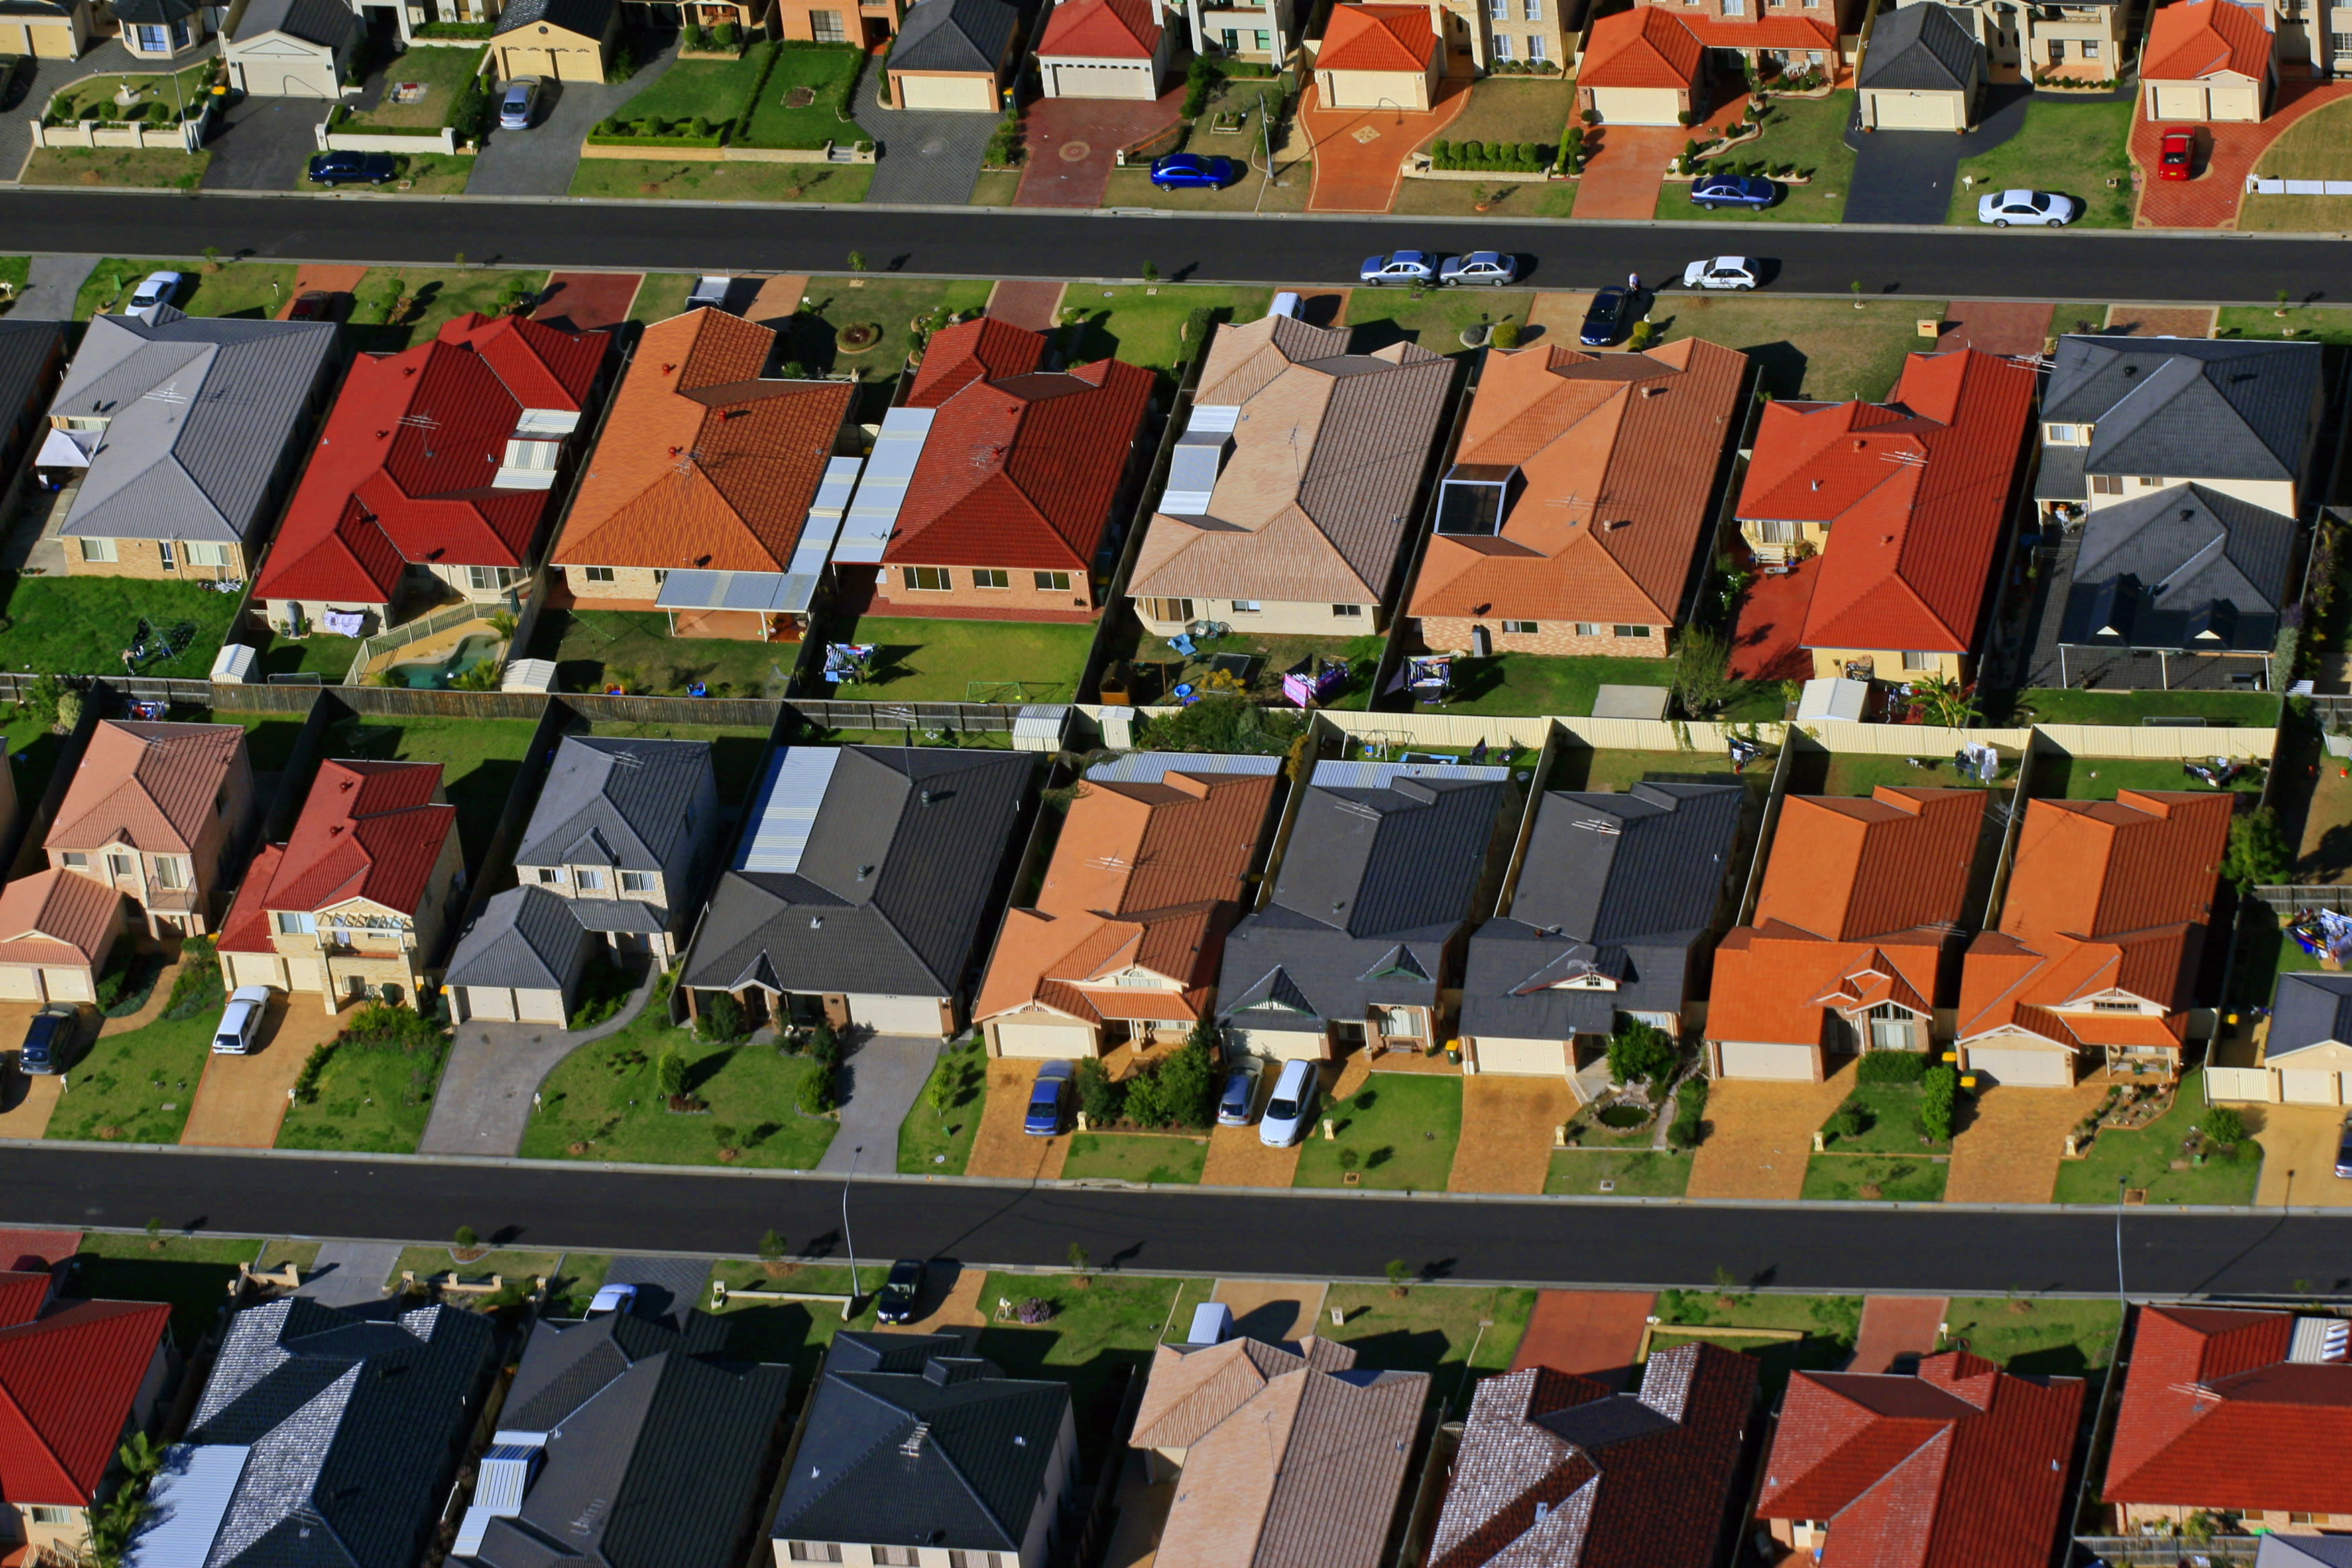 House prices to rise 10% next year